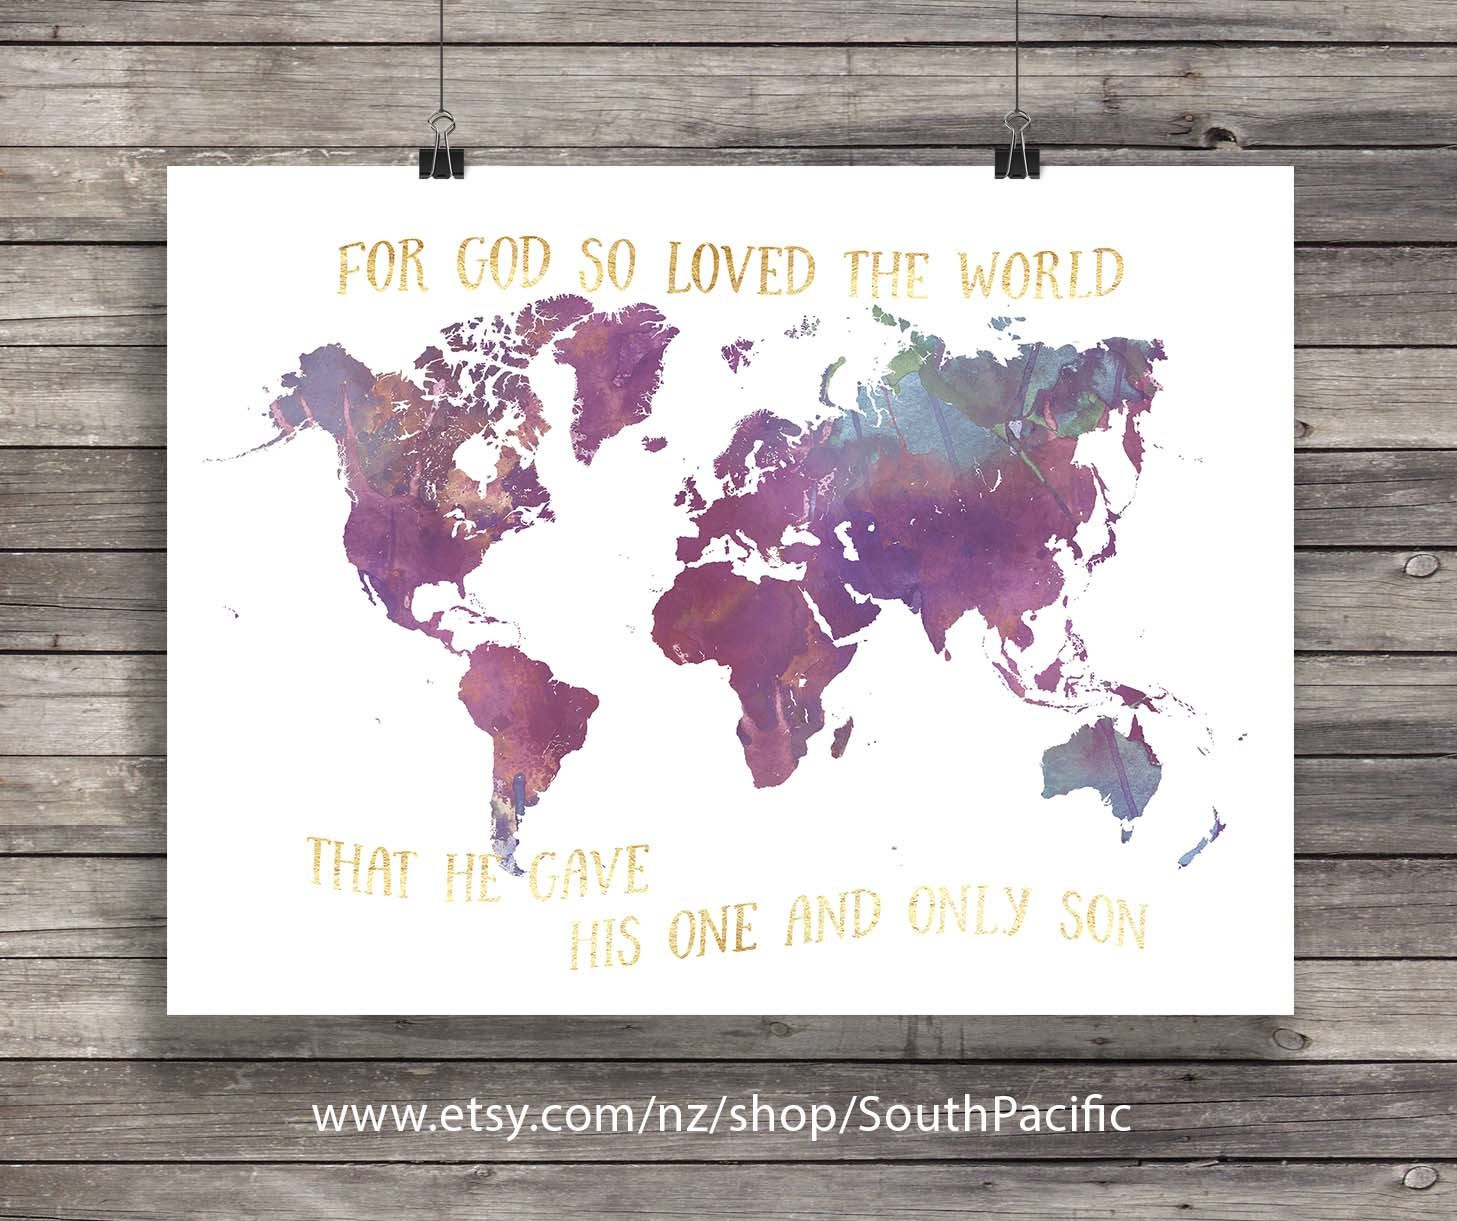 Printable art watercolor world map john 316 god so loved the printable art watercolor world map john 316 god so loved the world gumiabroncs Image collections